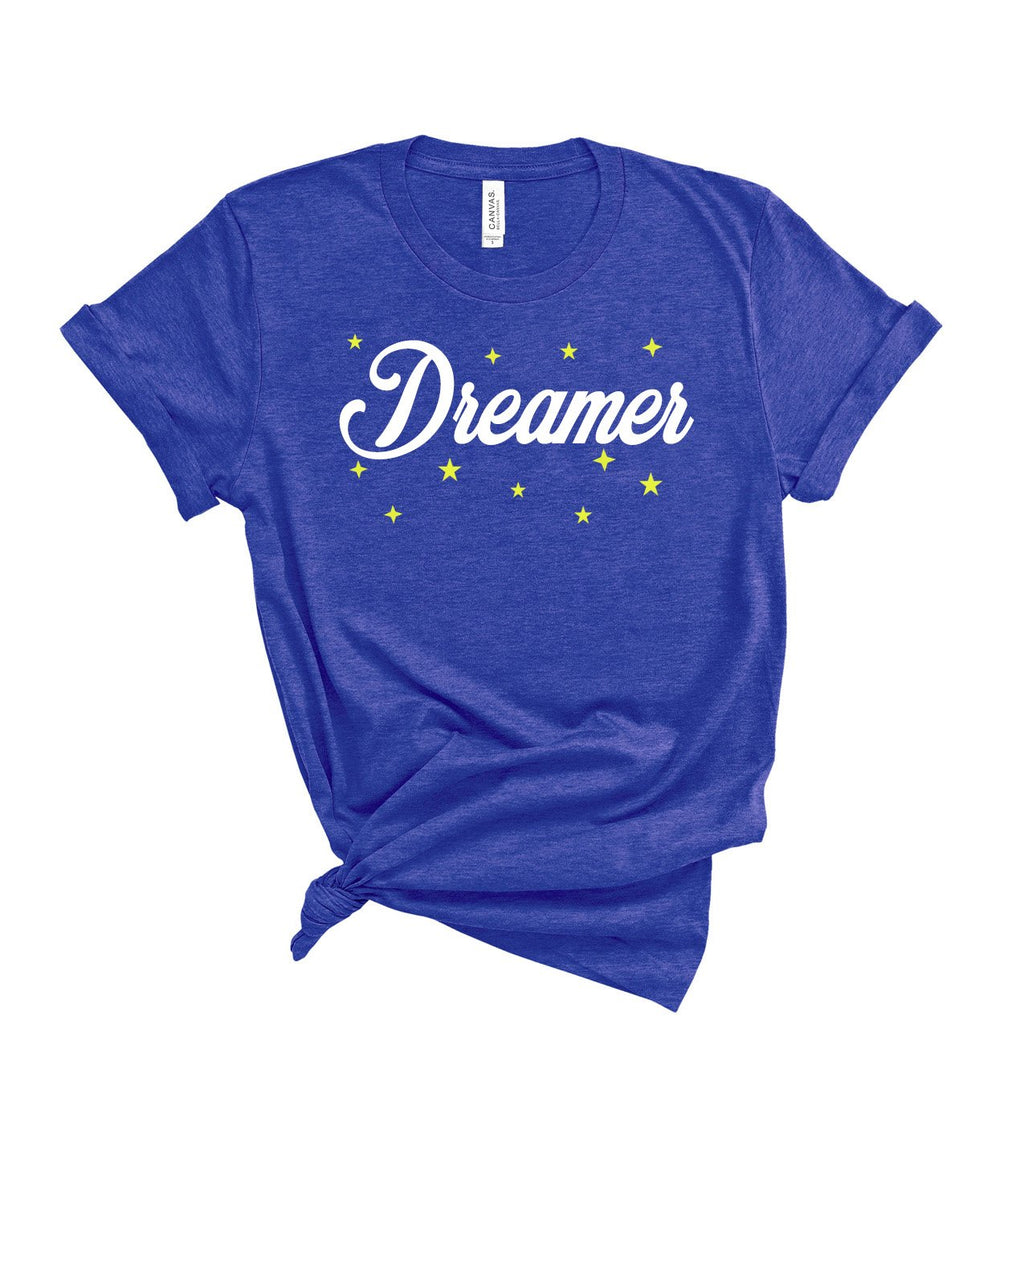 This cute Dreamer tee is perfect to let everyone know that you're all about the positive vibes! This motivational shirt is a great inspirational tee to spread positivity and love! Always remember, DREAM BIG!